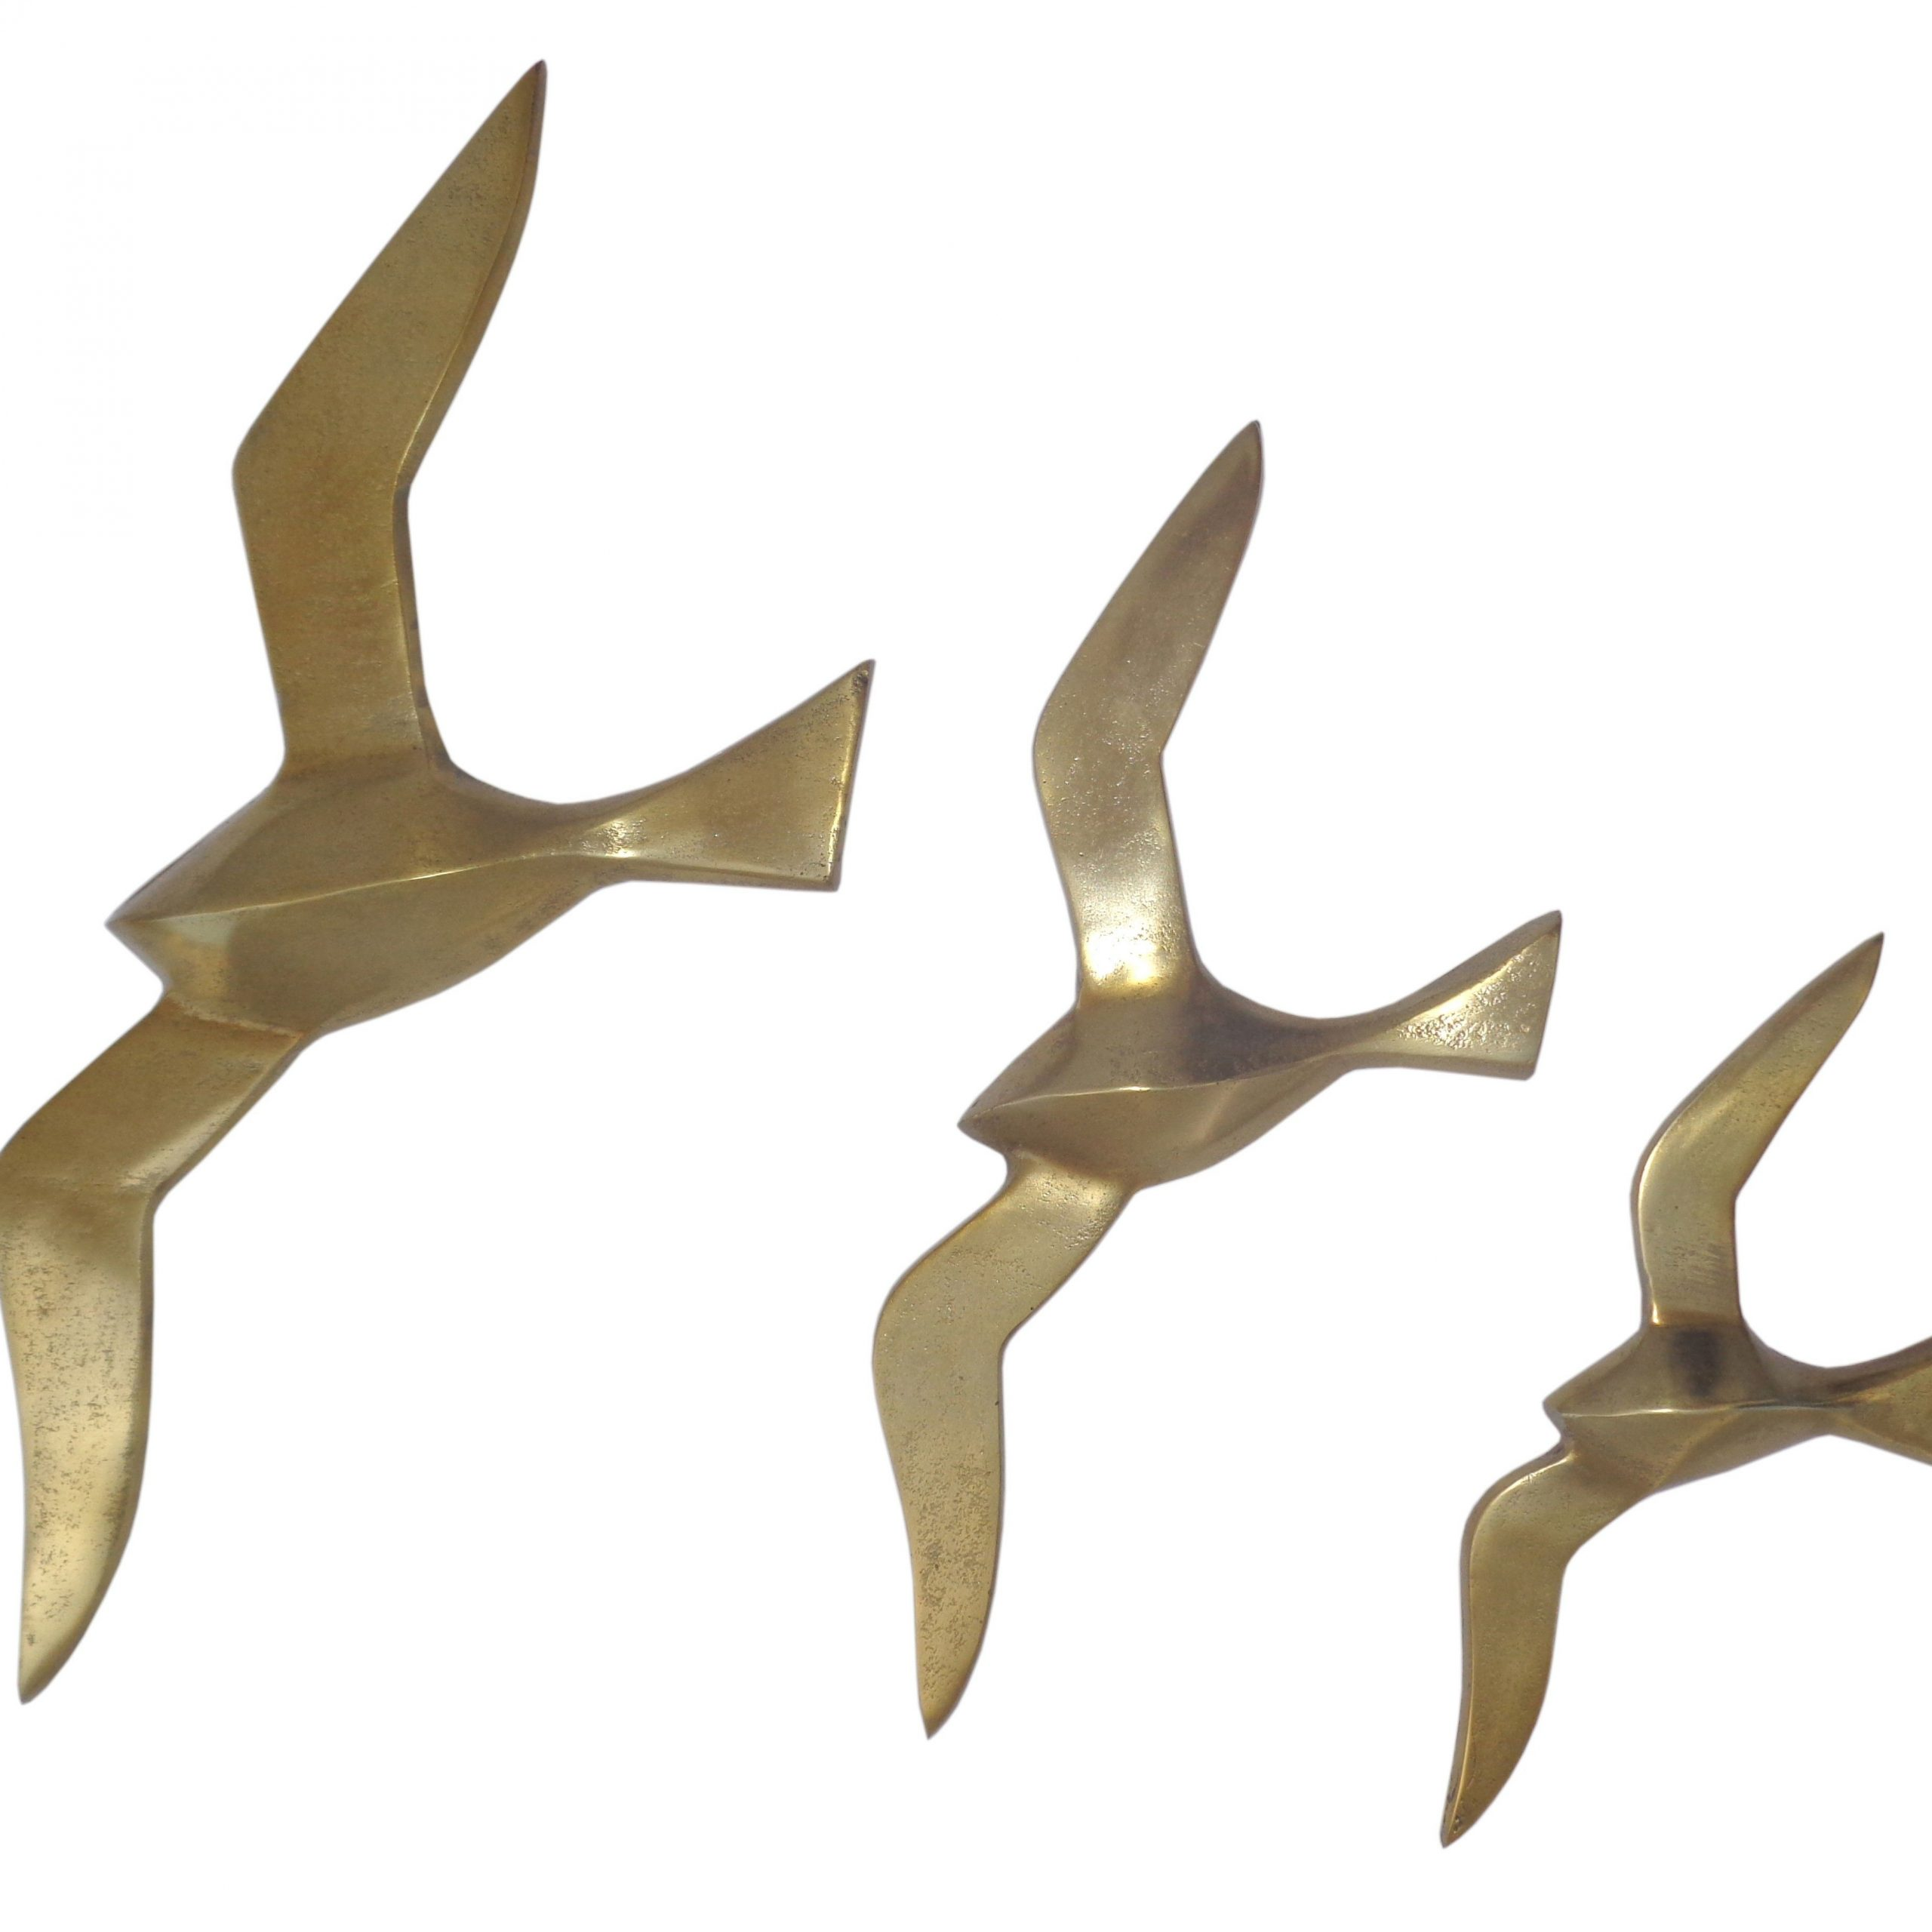 Popular Metal Birds Wall Décor By Beachcrest Home For A Set Of Three Sculptural Birds Adds Dimension To Blank (View 16 of 20)